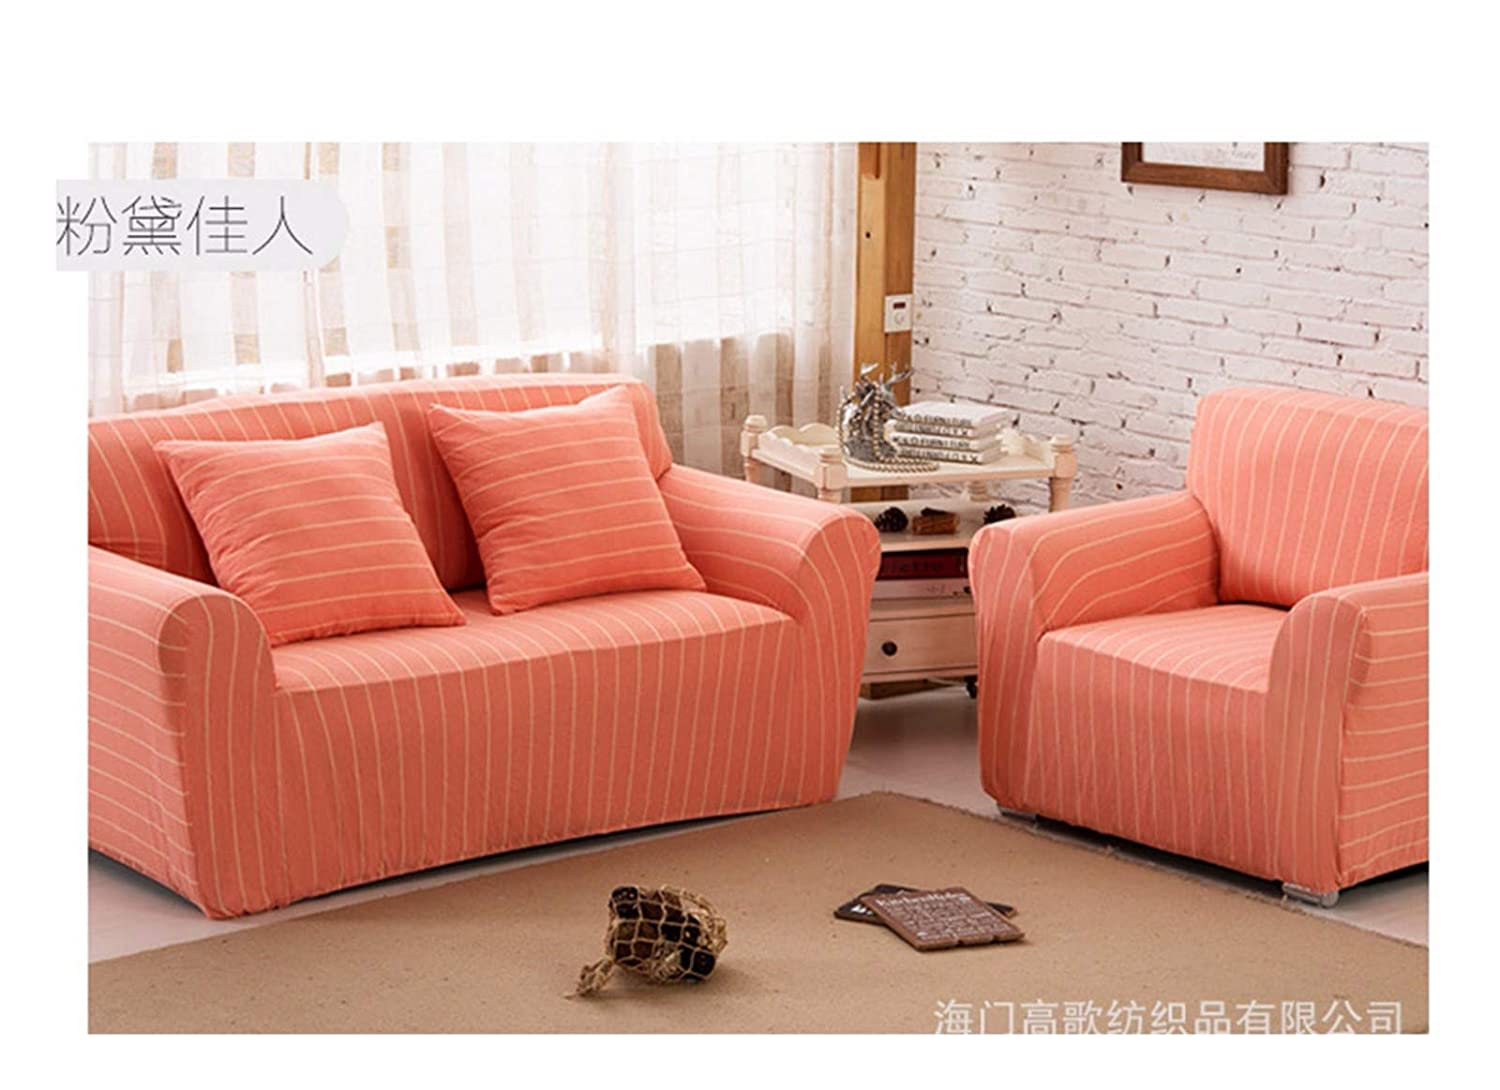 3seat VGUYFUYH orange-White Stripes Skid-Proof Sofa Cover Cotton Full Package Elasticity Household Versatile Four Seasons Sofa Cover Simple Fashion One Set Durable Dustproof Pet Dog Predective Cover,3S